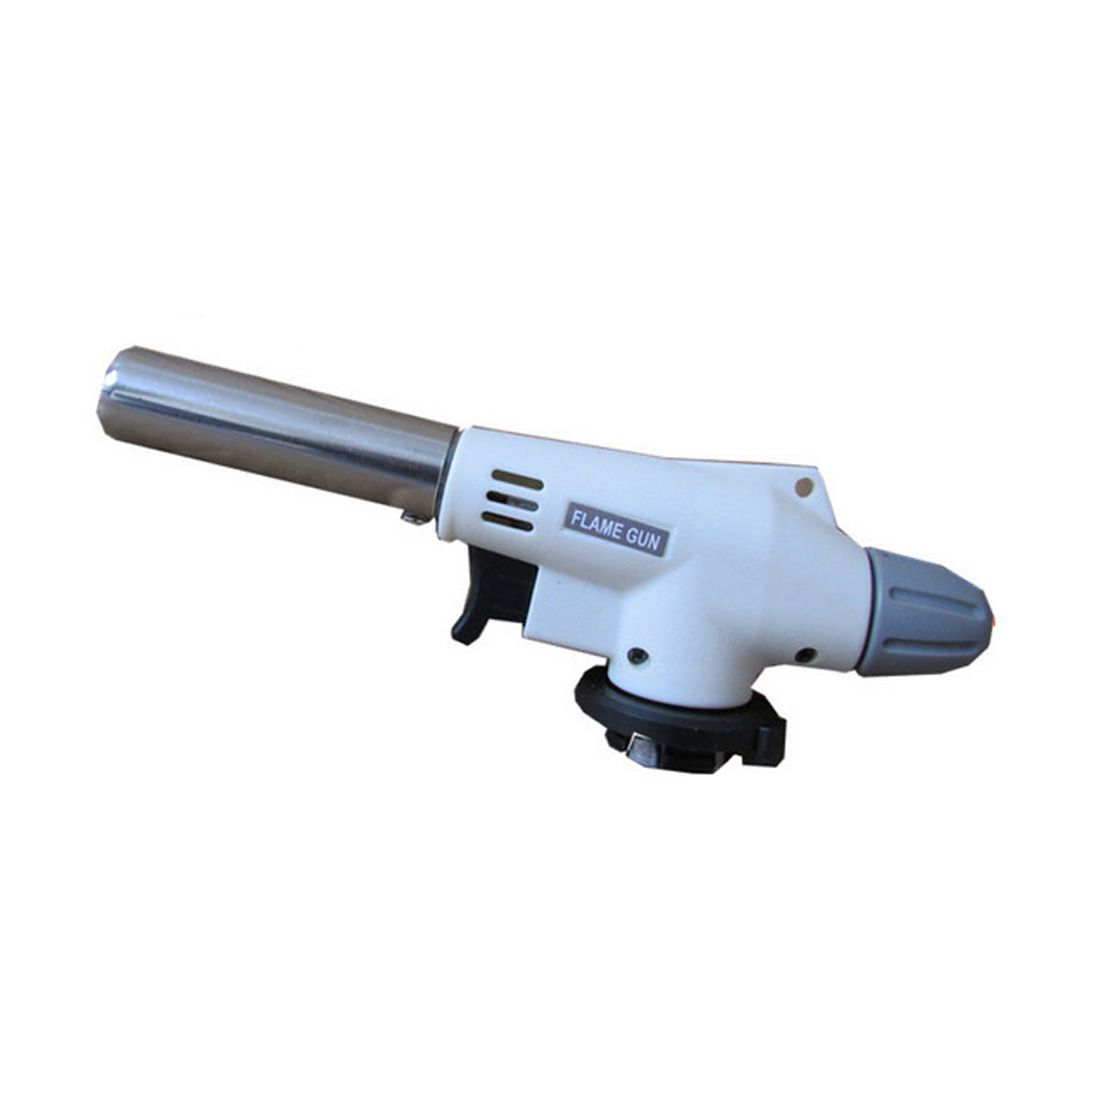 Gas Torch Flame Gun Blowtorch Cooking Soldering Butane AutoIgnition Gas-Burner Lighter Heating Welding Gas Burner Flame